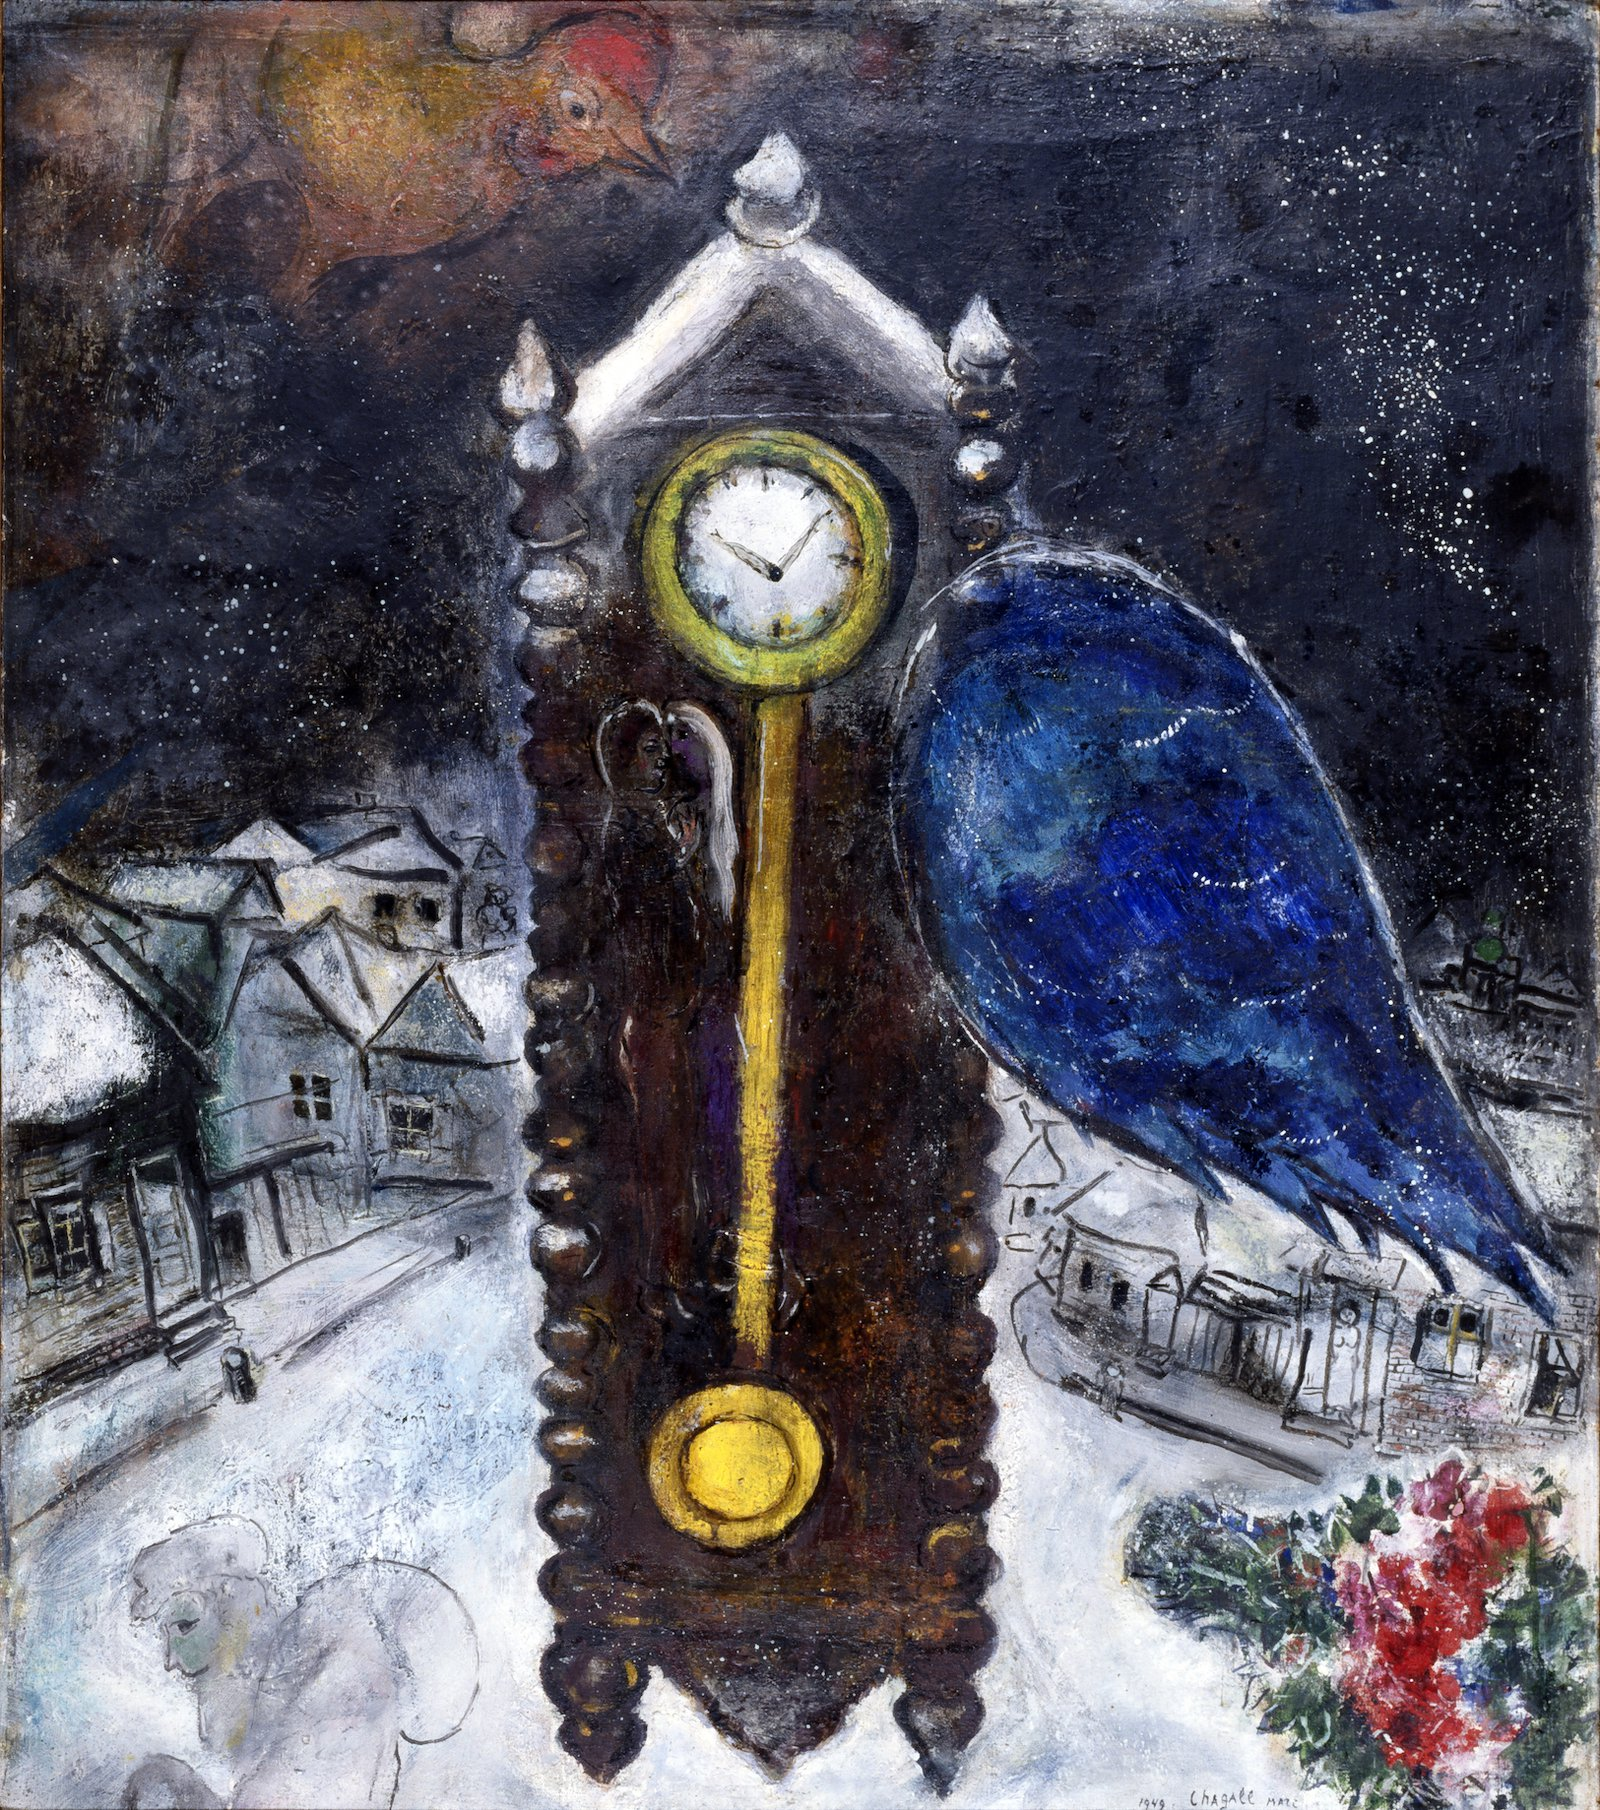 «Clock with Blue Wing», created in 1914. Private collection in Paris